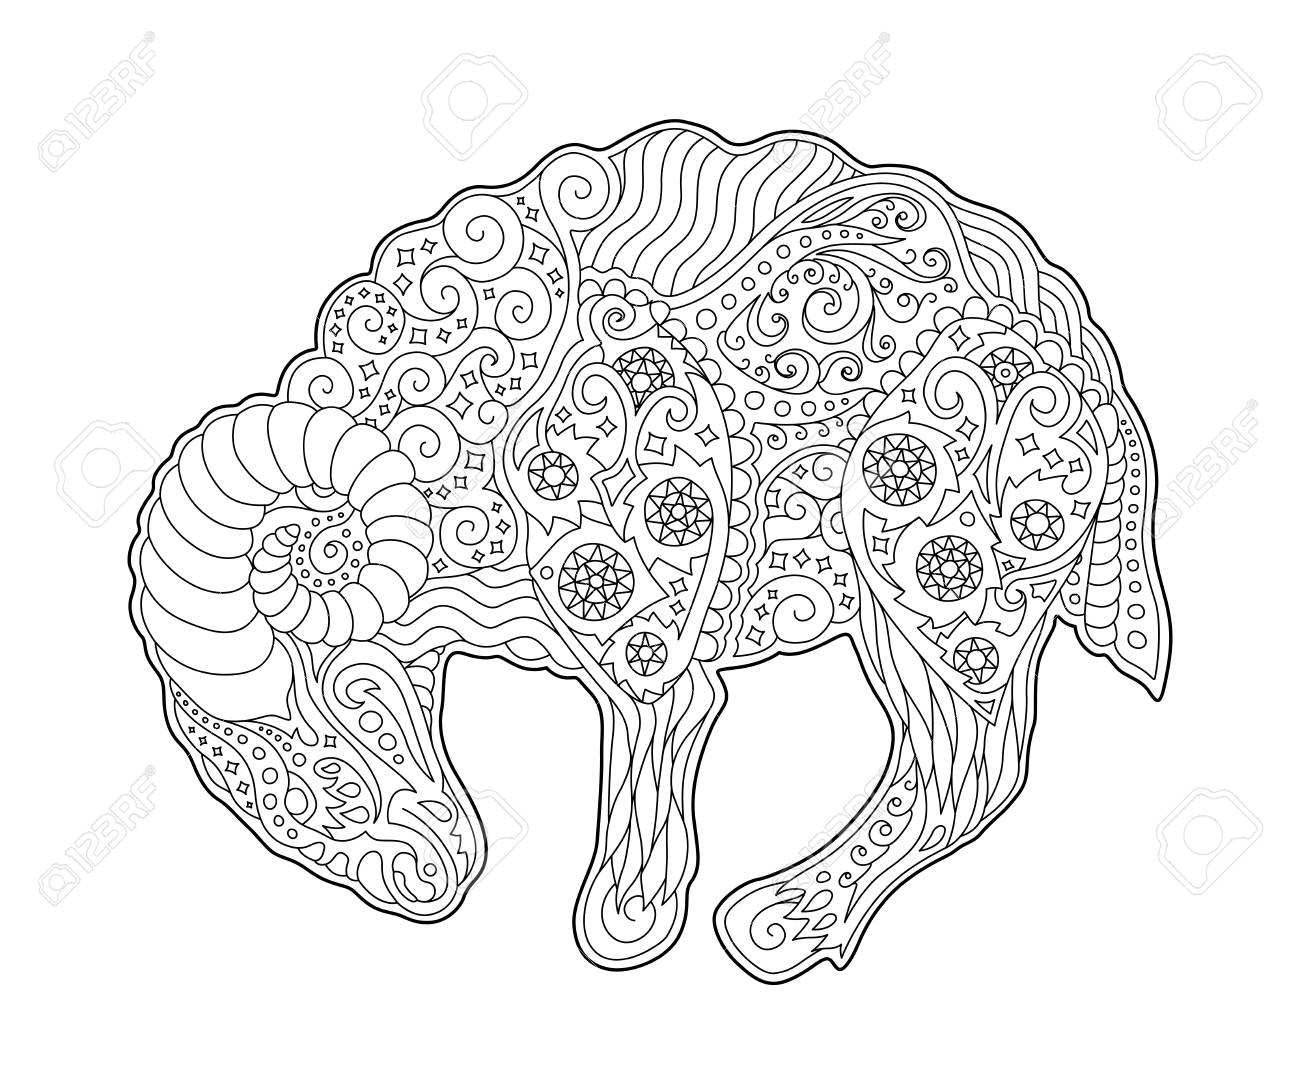 Zodiac Coloring Pages: Printable Zodiac Signs Coloring Pages for ... | 1091x1300